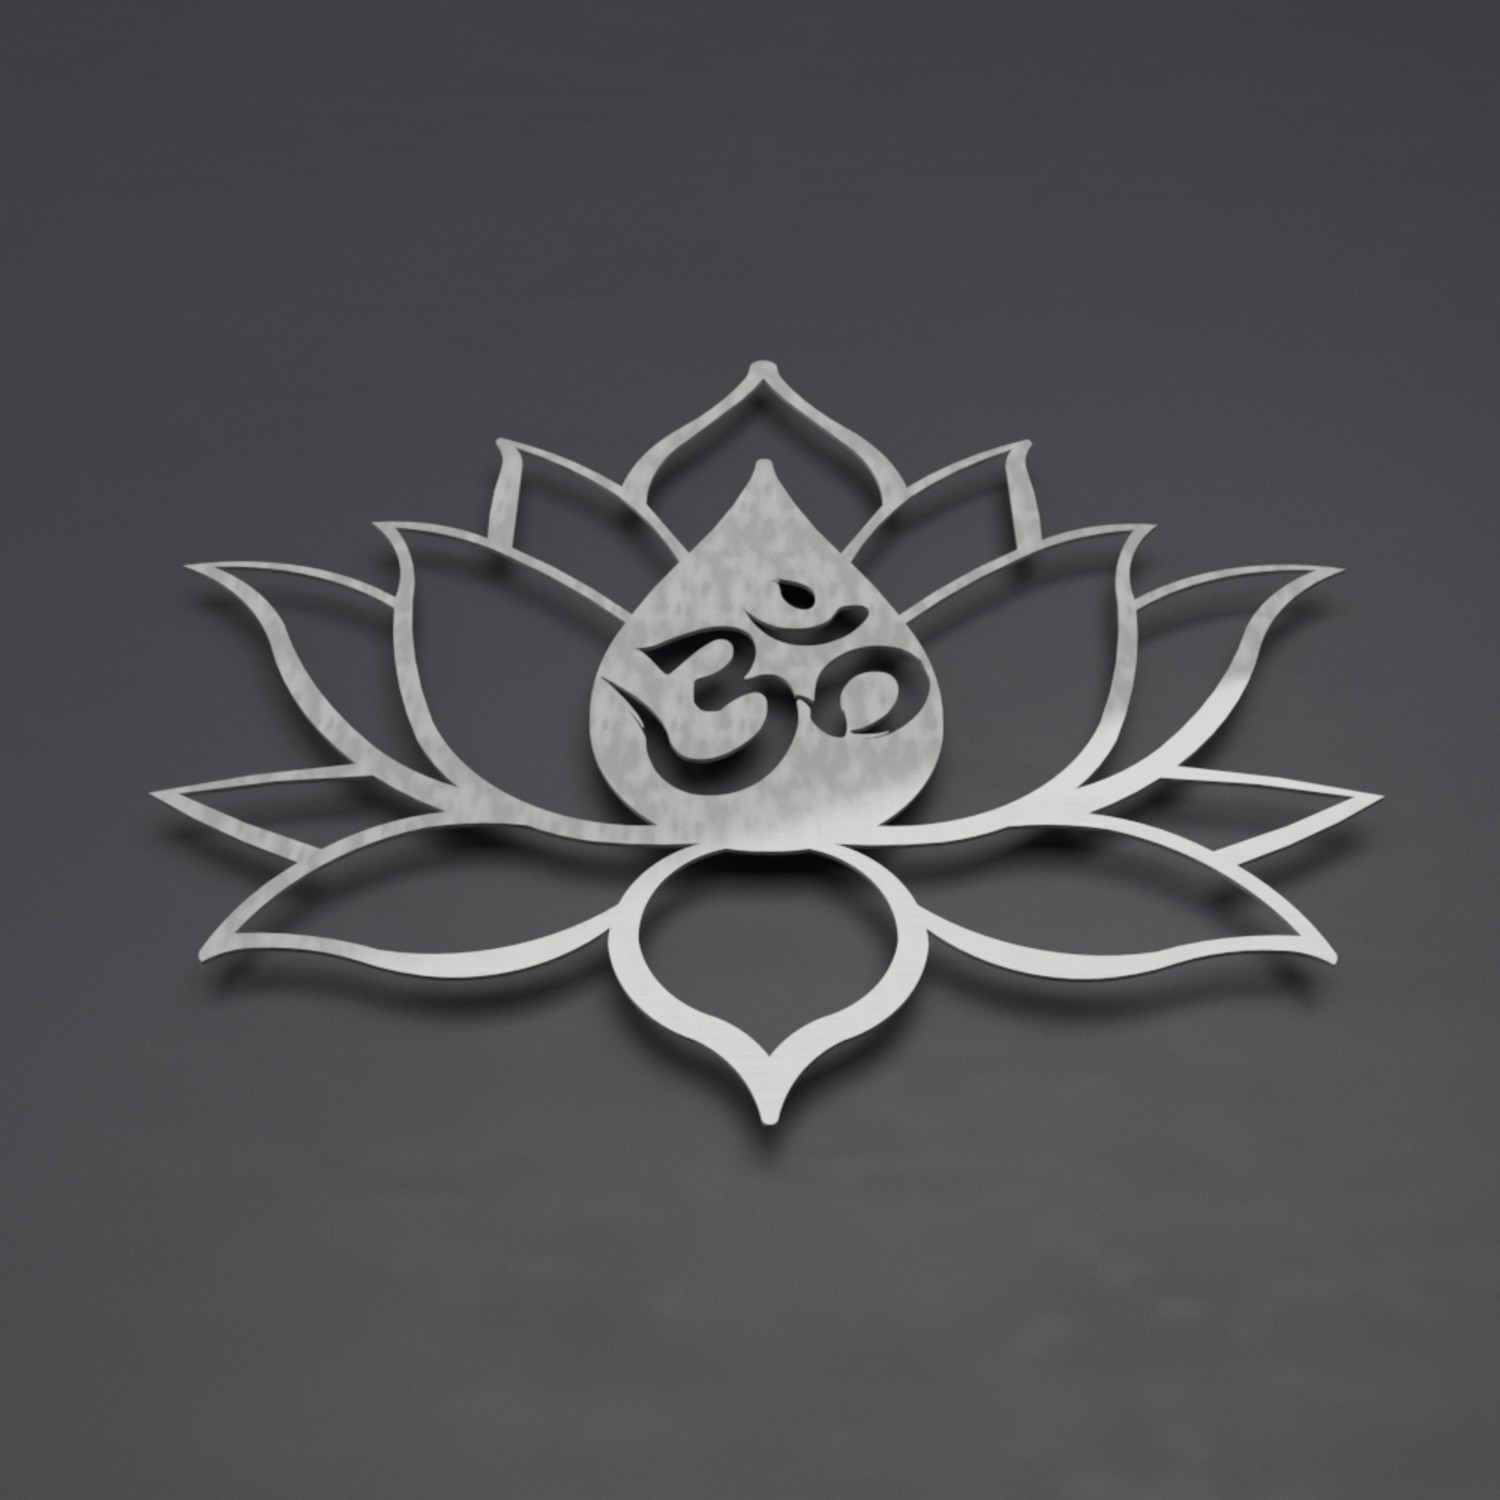 Om symbol lotus flower 3d metal wall art 36w x 31h x 025d om symbol lotus flower 3d metal wall art 36w x 31h mightylinksfo